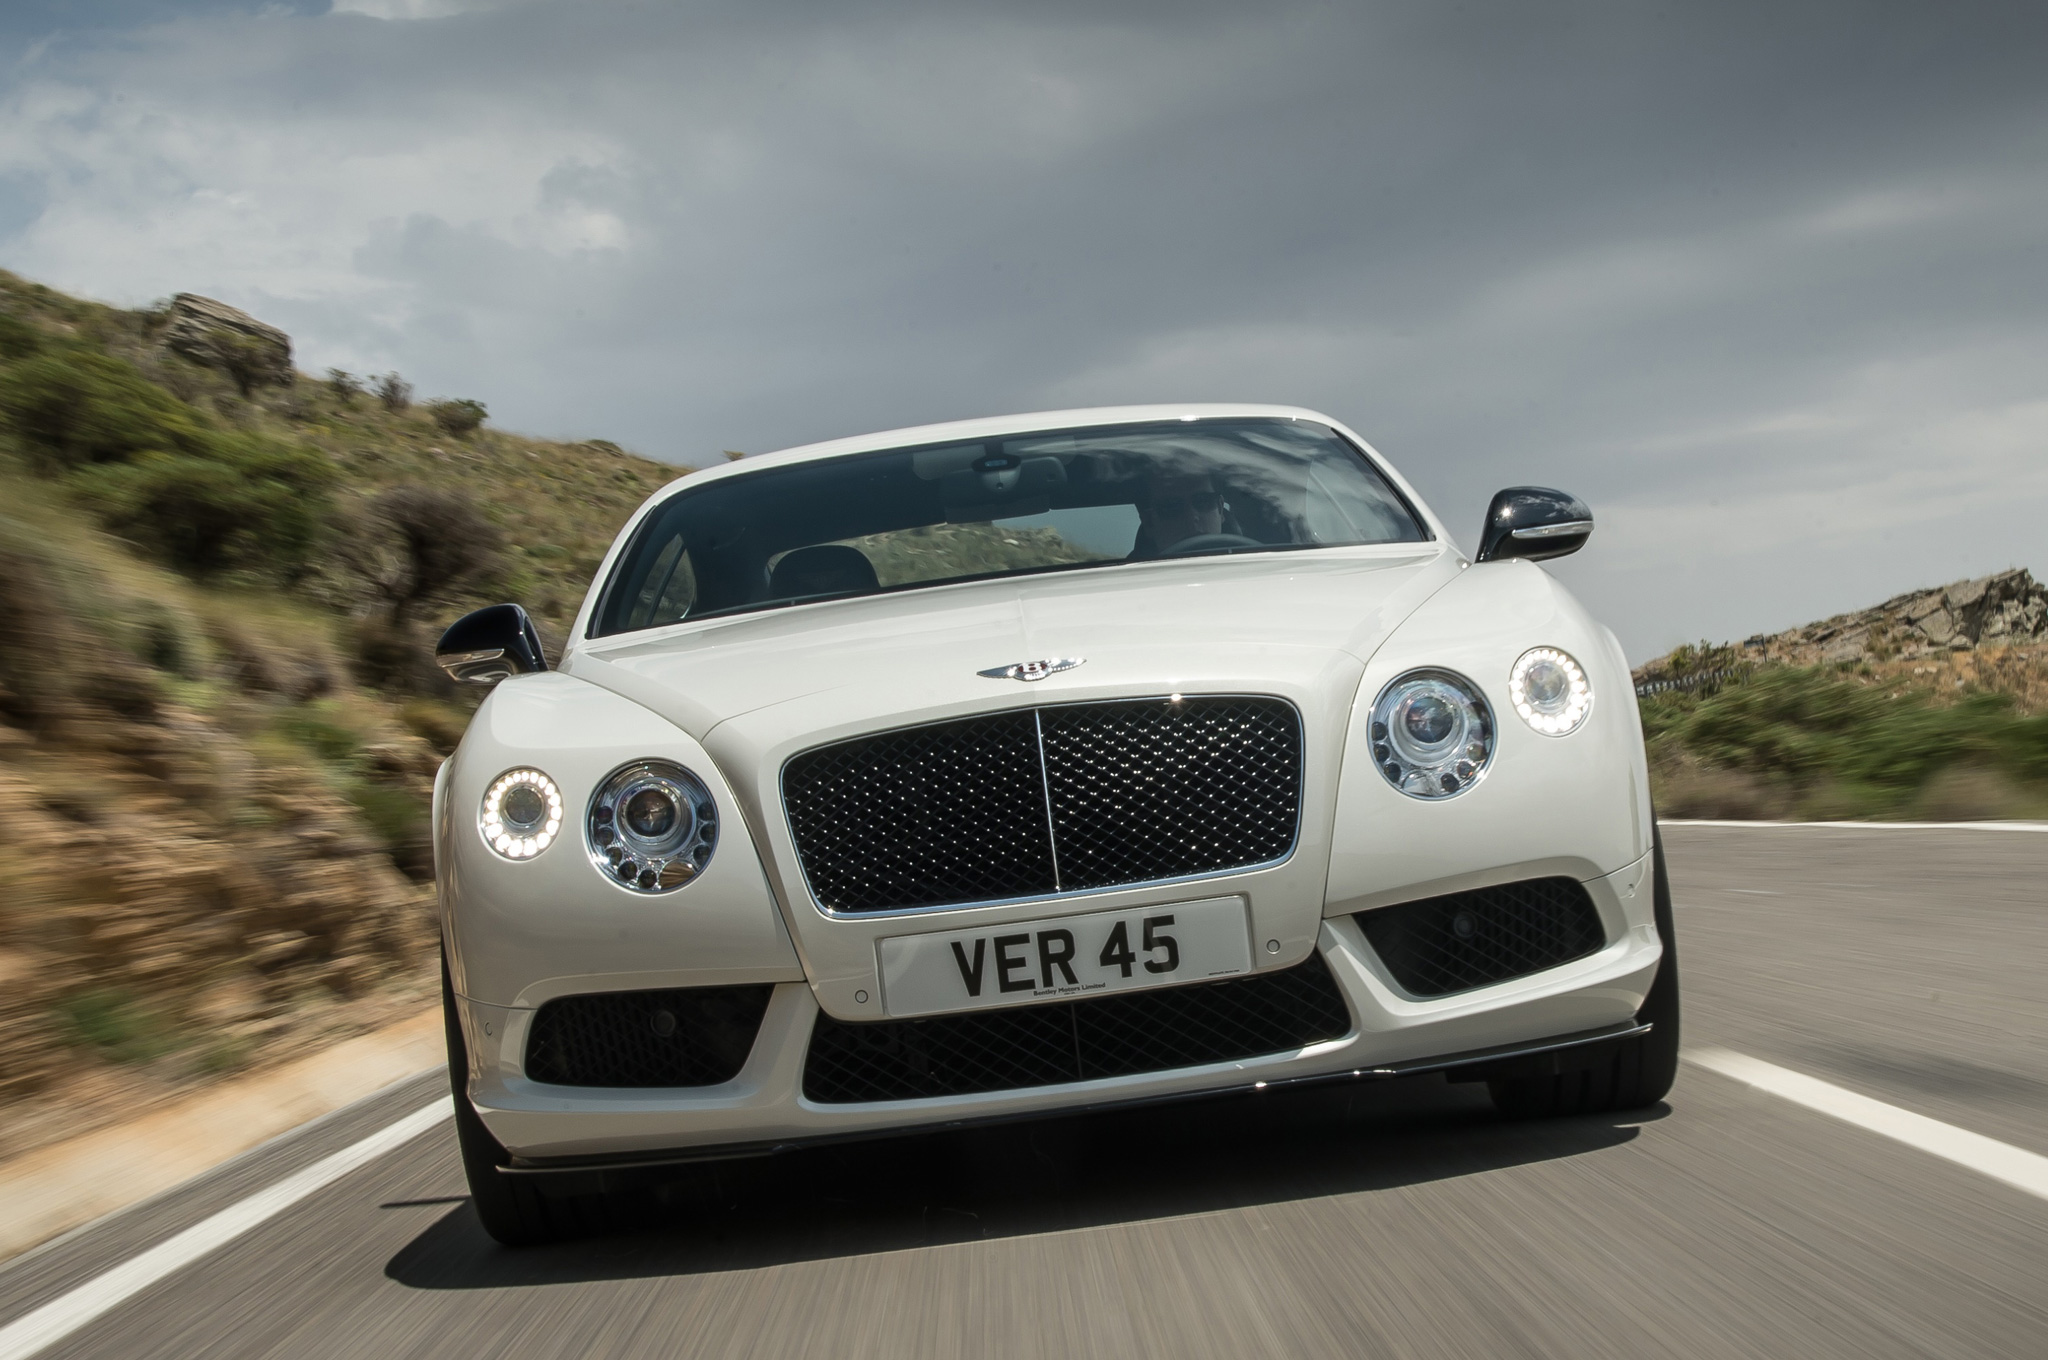 2014 Bentley Continental Gt Image 10